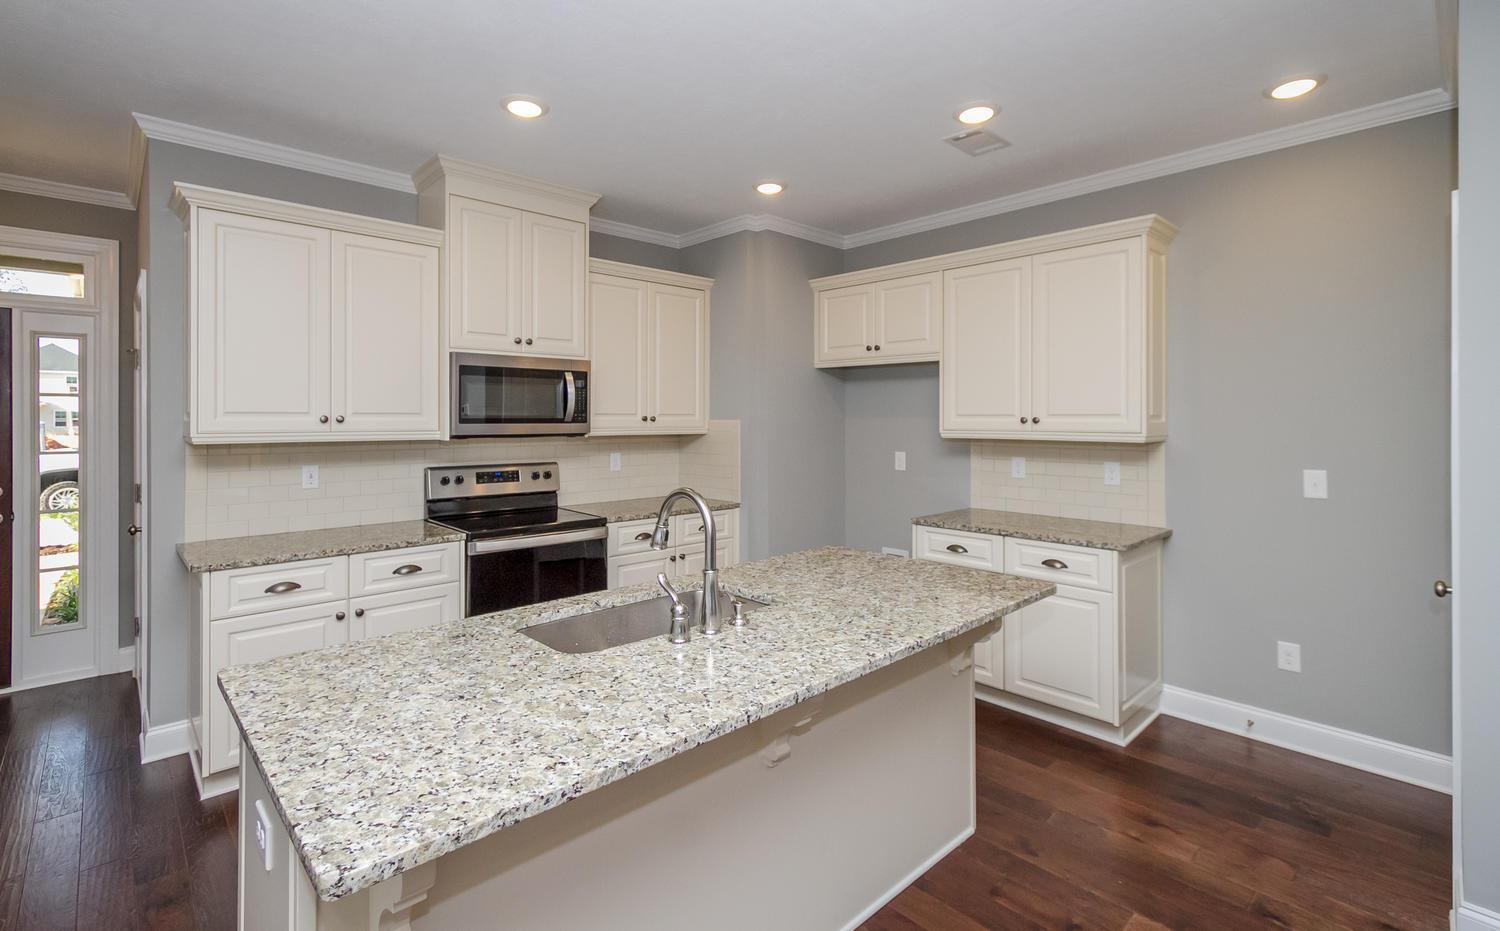 Kitchen featured in the Emerson 2 Bedroom Townhome By Ivey Residential in Augusta, GA